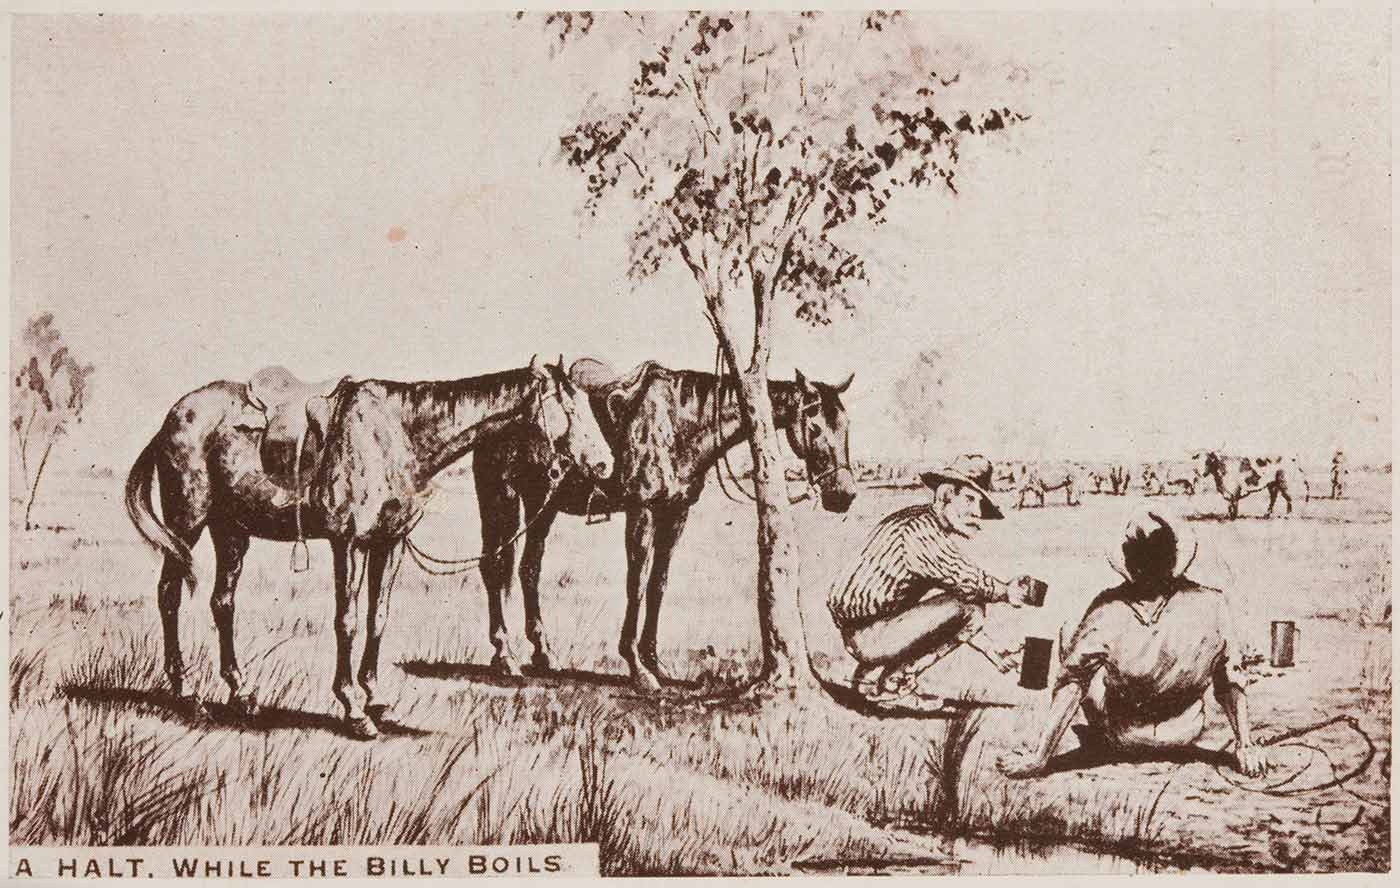 Postcard featuring two horses tethered to a tree and two men sitting waiting for a billy to boil. The text reads 'A HALT. WHILE THE BILLY BOILS'. - click to view larger image